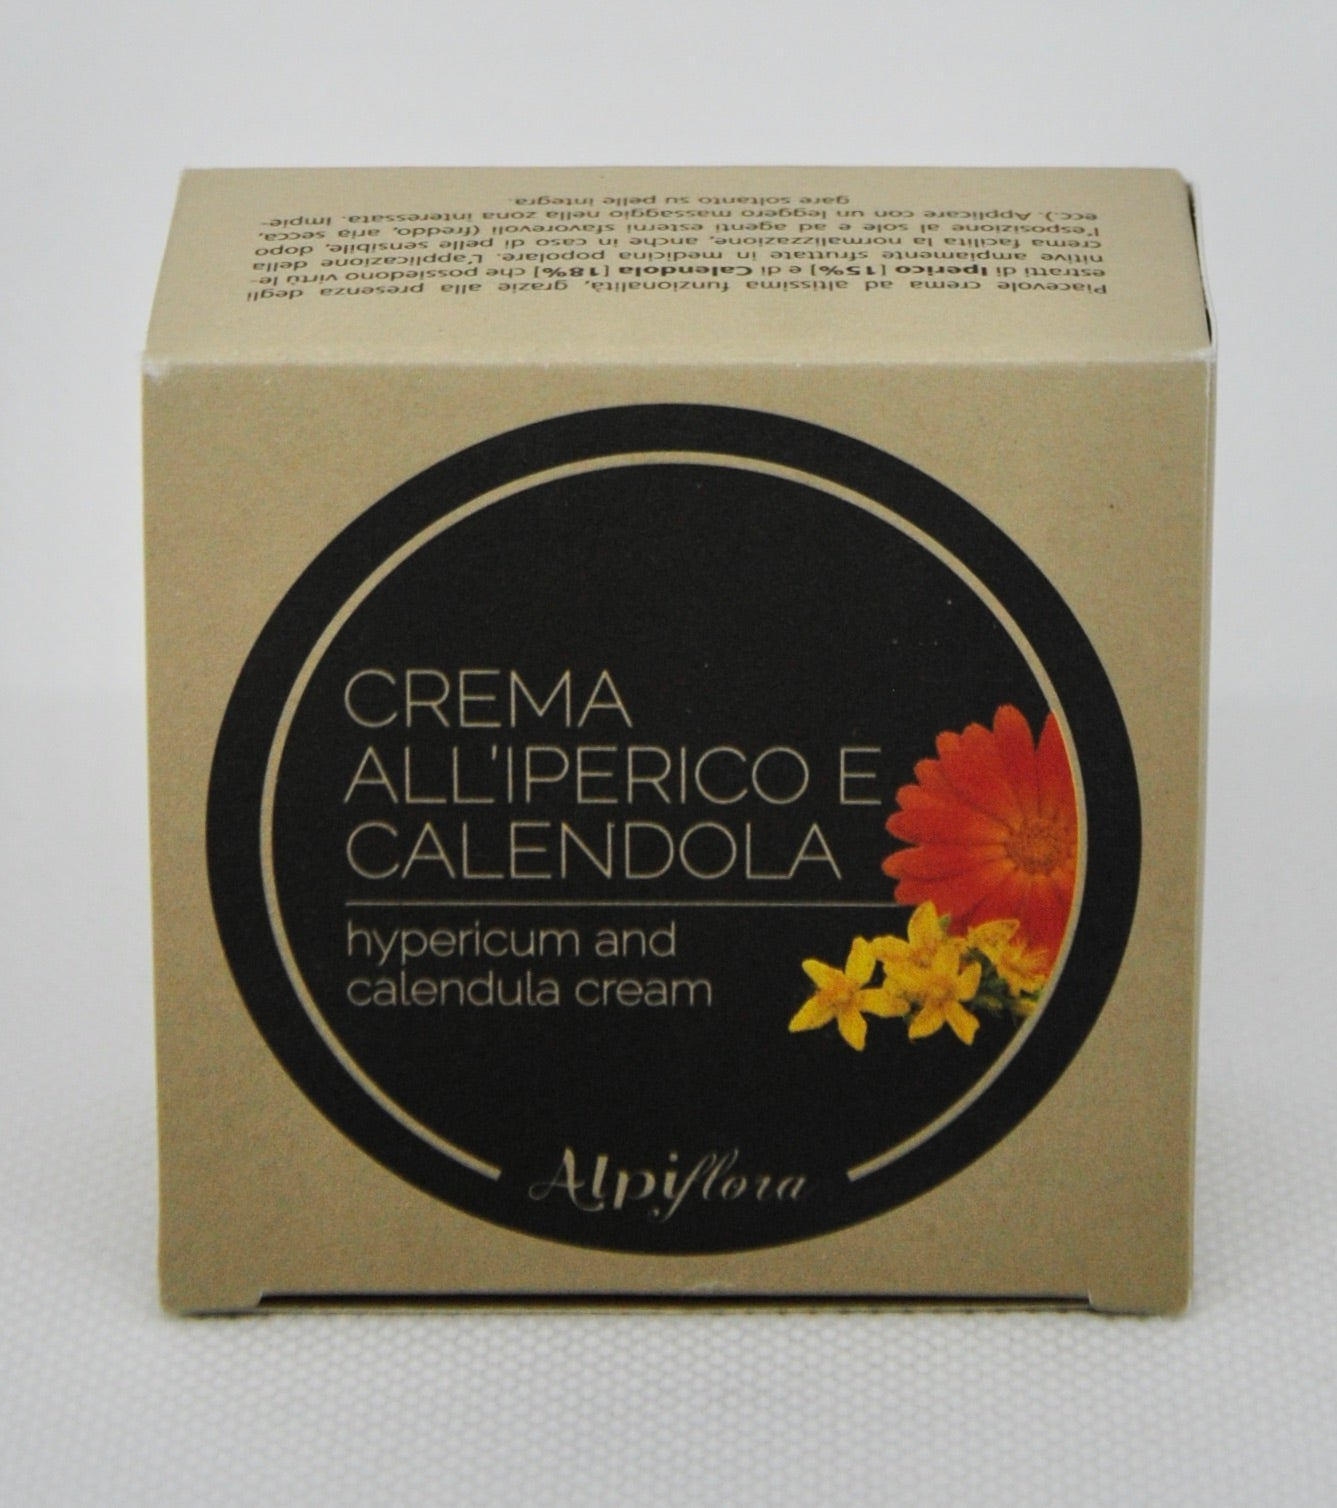 Crema all'iperico e Calendola 75ml